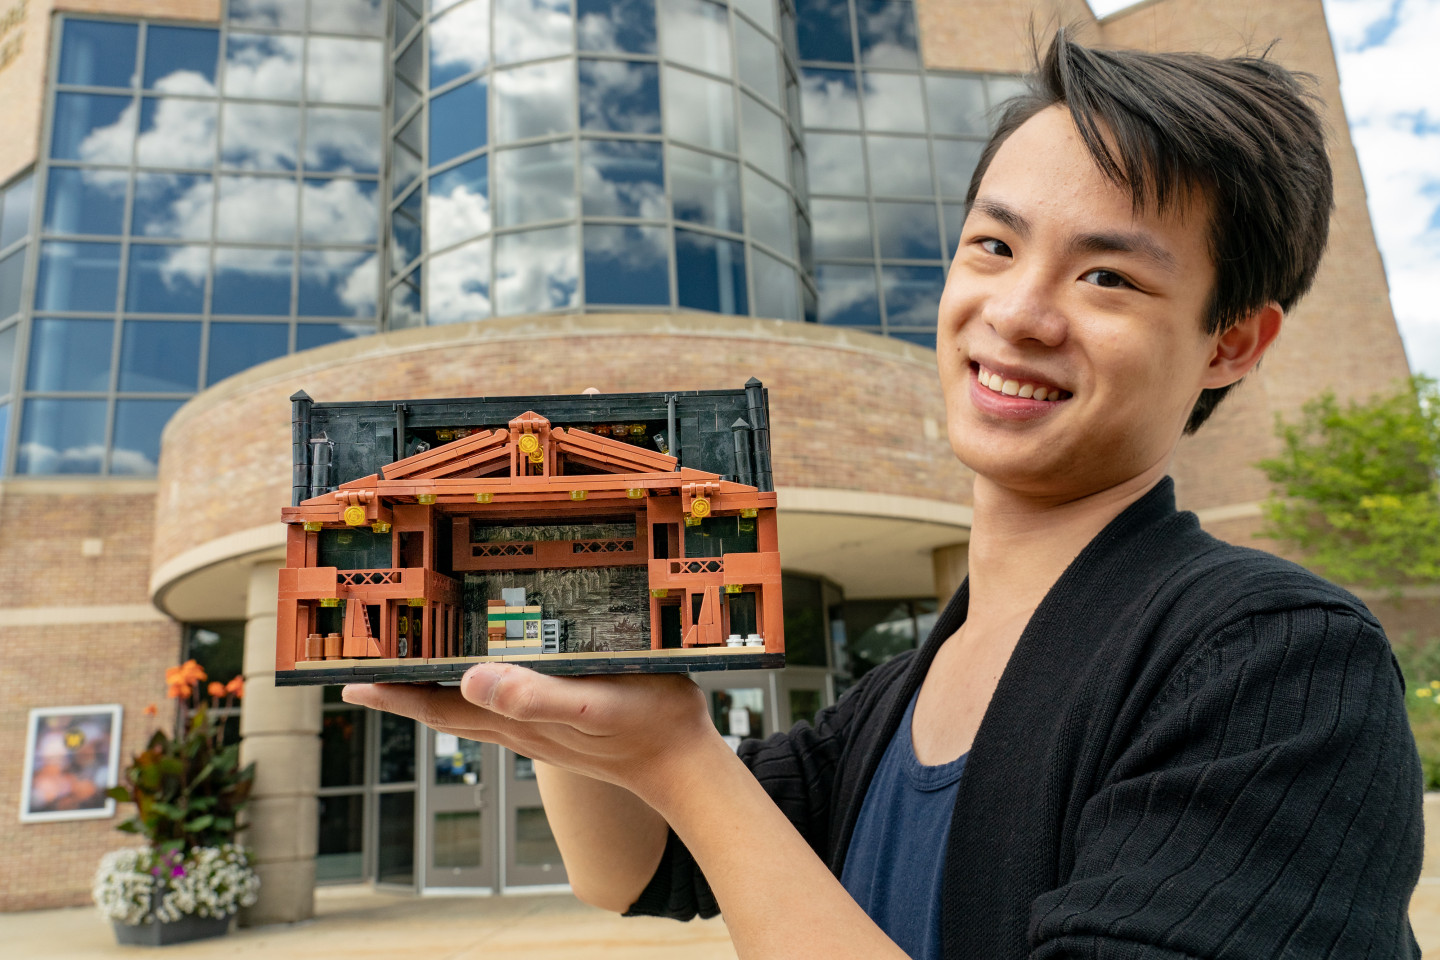 Henry Lee holds one of his Lego minature creations.